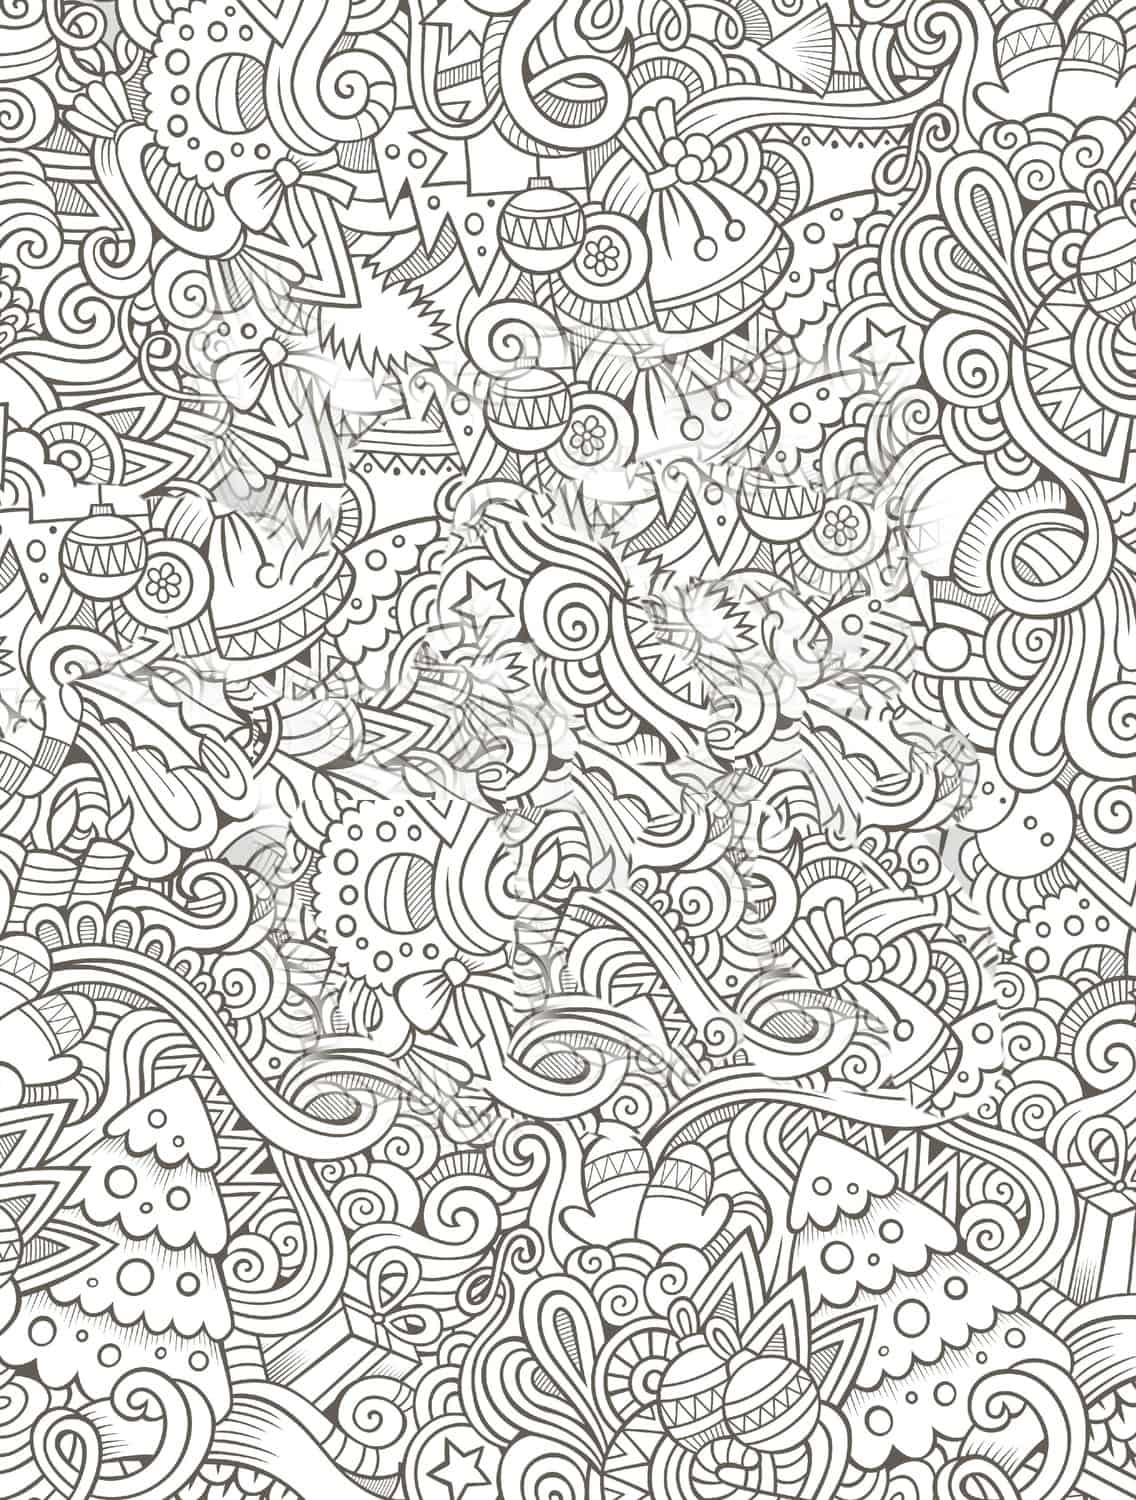 photograph relating to Free Printable Adult Christmas Coloring Pages called 10 Cost-free Printable Family vacation Grownup Coloring Internet pages